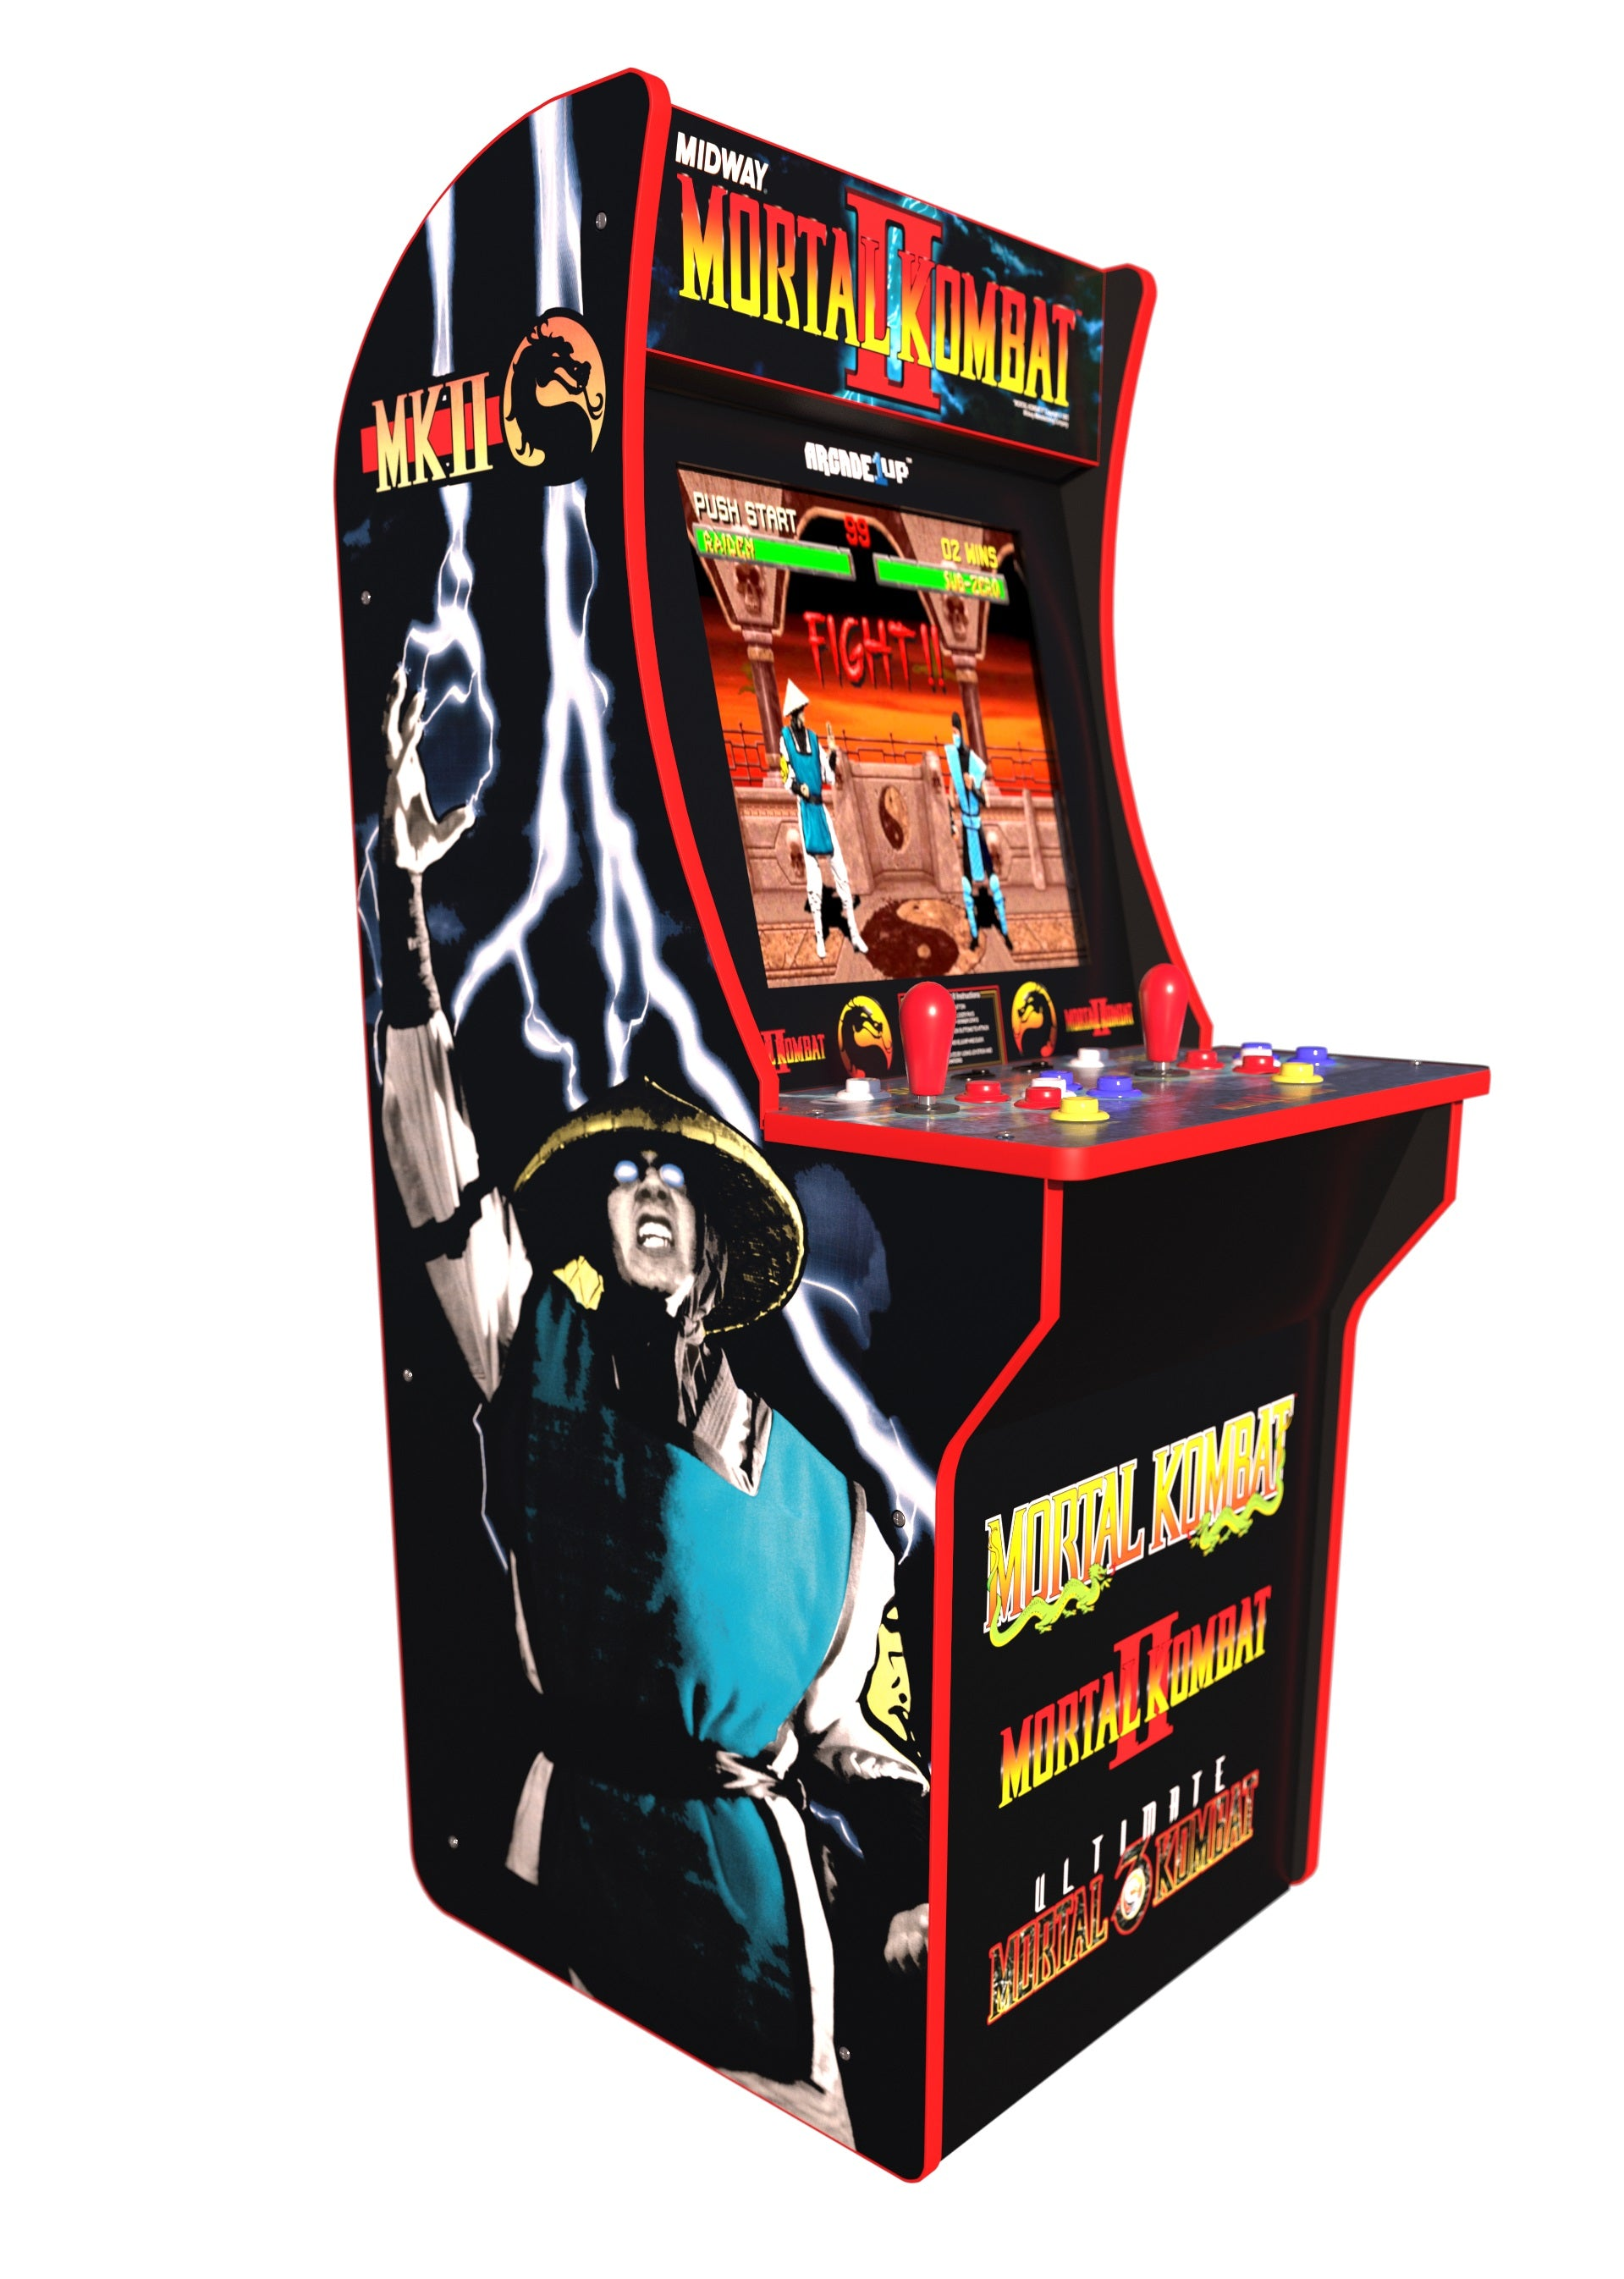 Mortal Kombat Arcade Machine with 3000 Games (Pac Man, Ms. Pac Man, Galaga, Tetris and many more) PLUS a Bonus of 50 3D Games. Includes Riser and Commemorative Stool! (Huntsman Farms Exclusive)